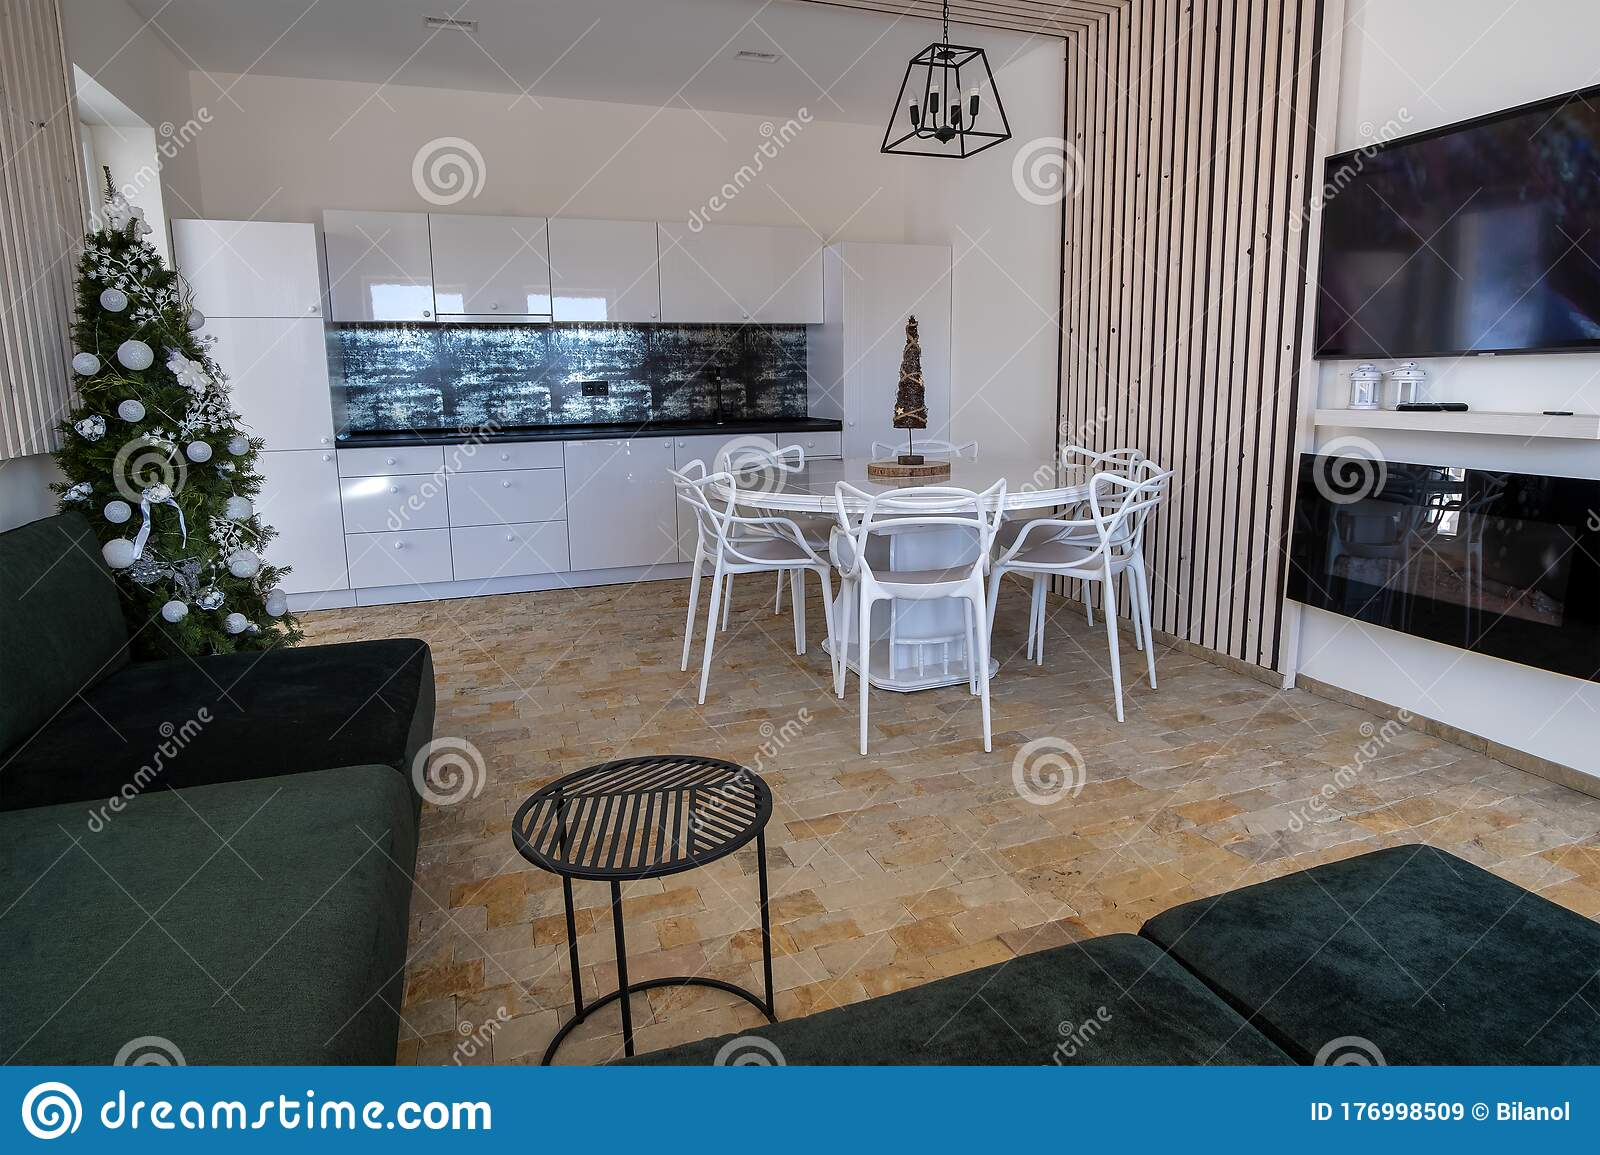 Interior Of Modern Spacious Kitchen With White Walls Decorative Wooden Elements Contemporary Furniture And Big Soft Couch Stock Image Image Of Furnished Large 176998509